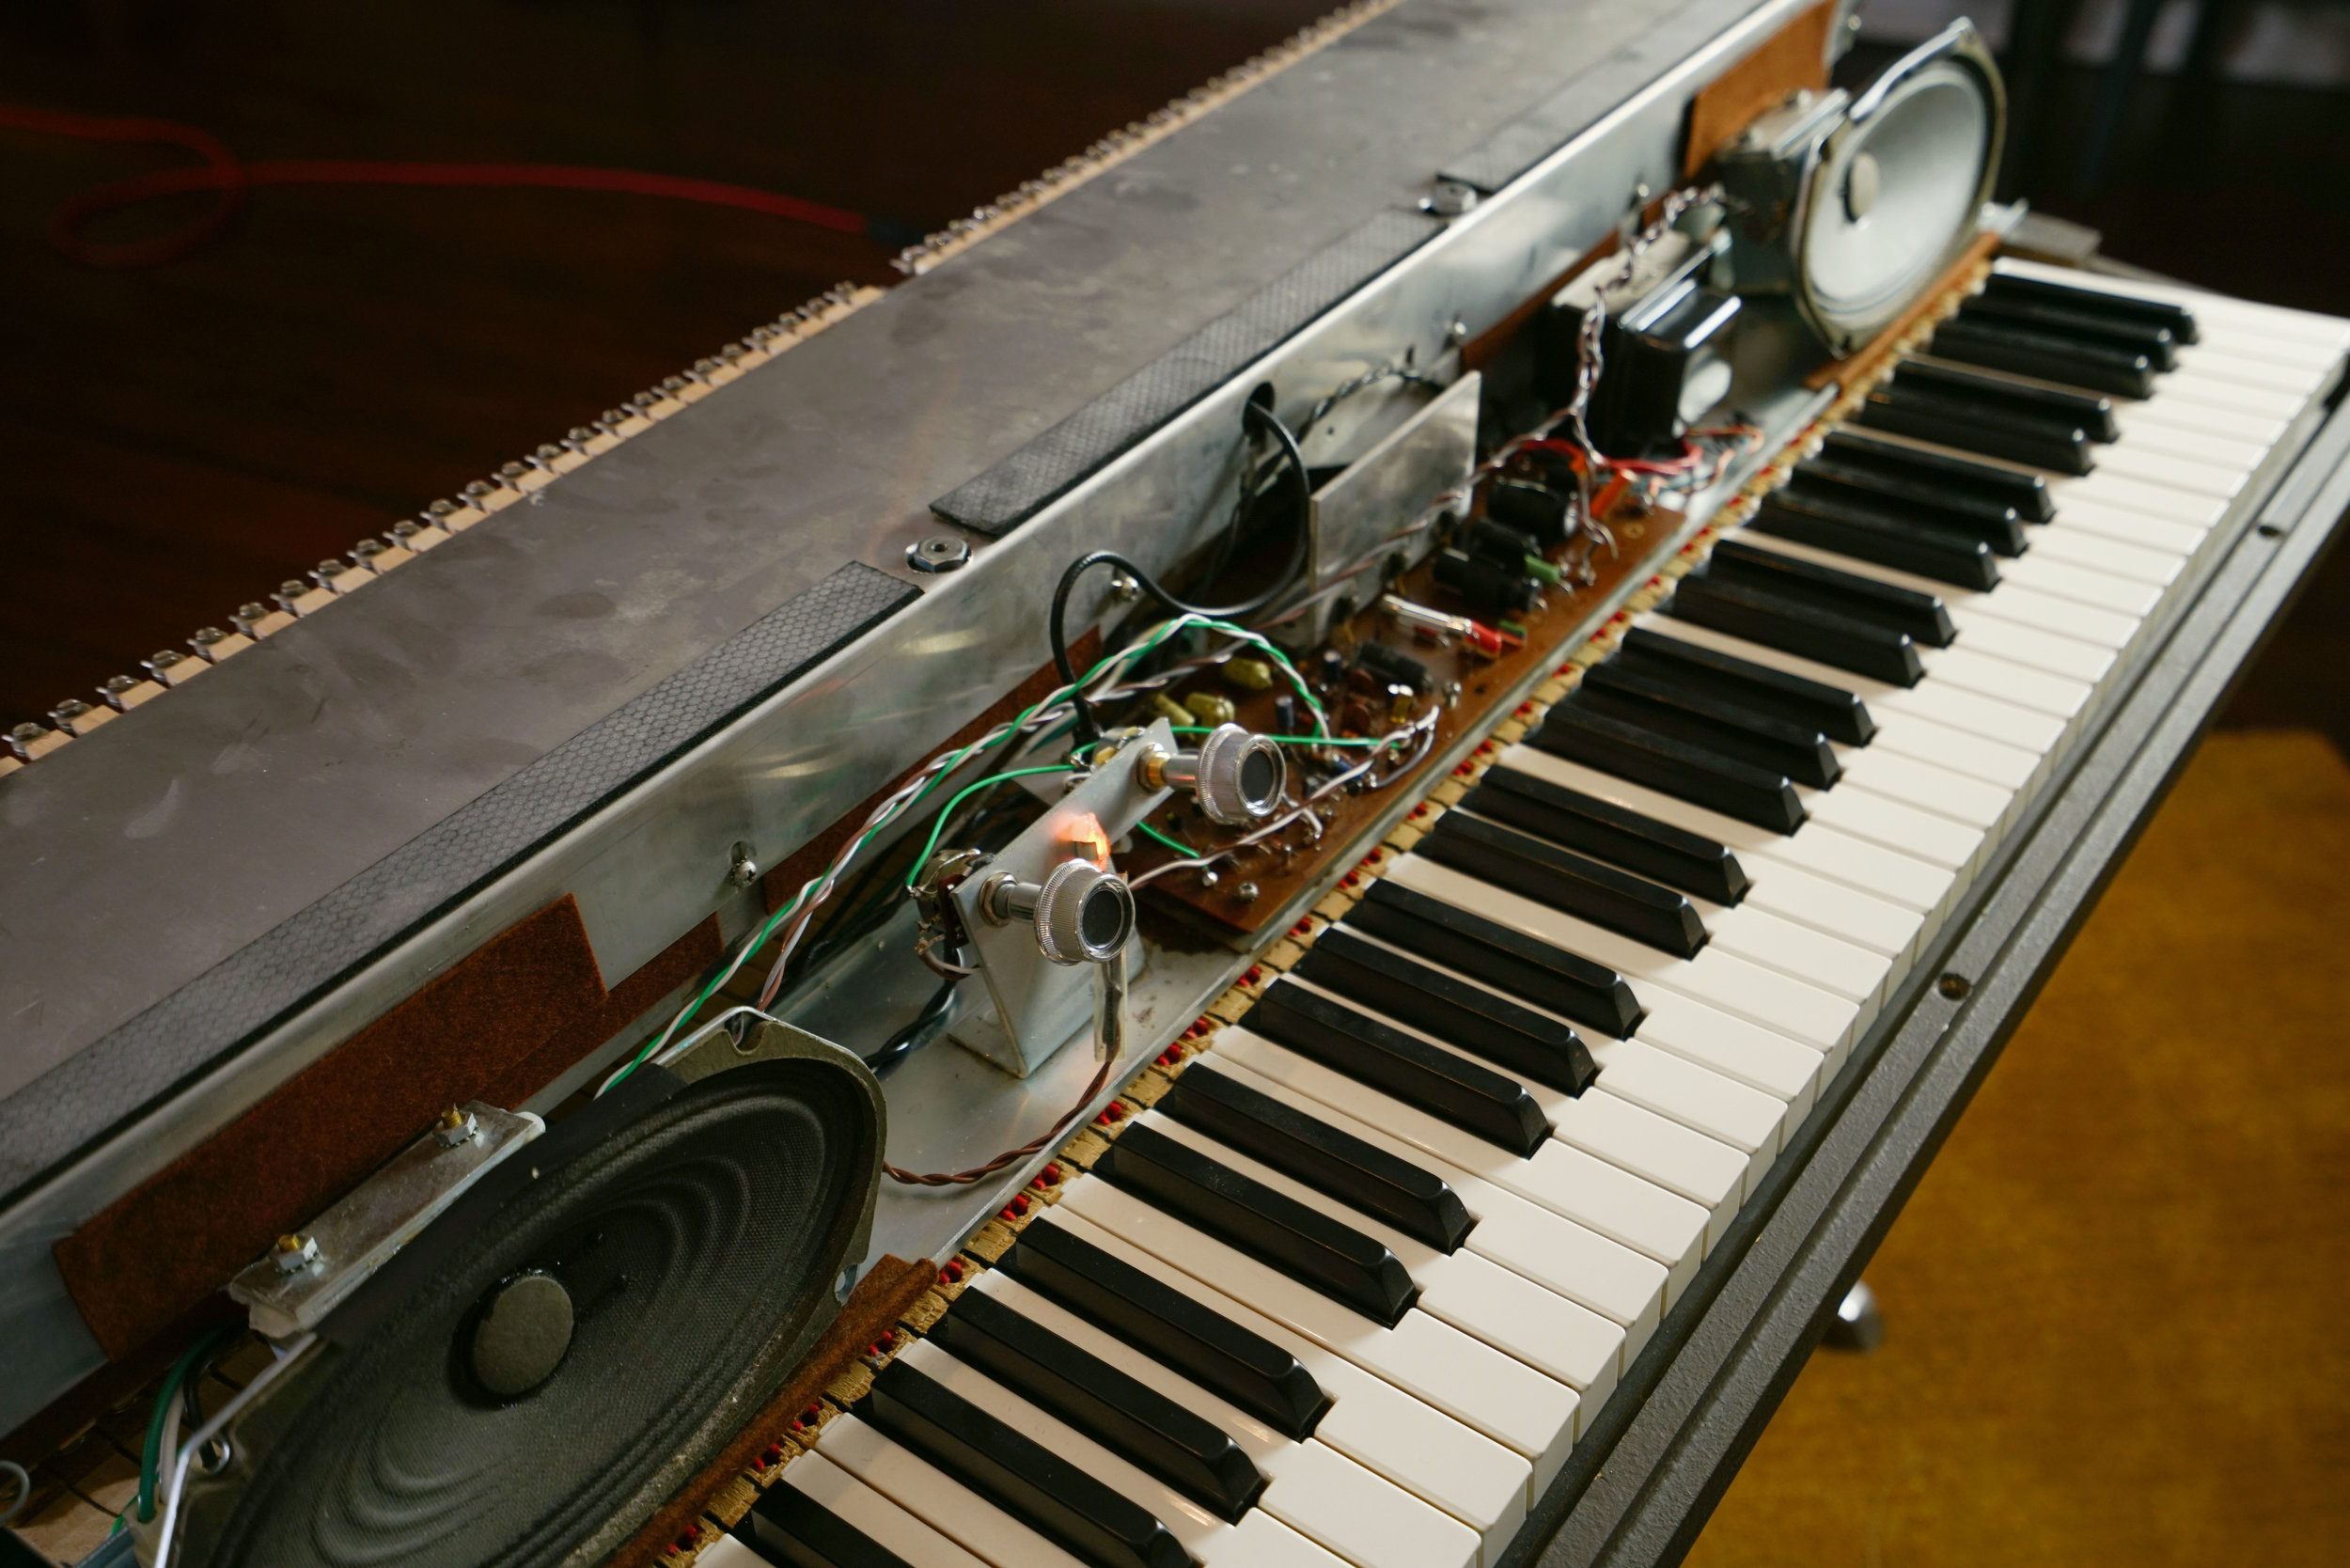 This Wurlitzer already has a hum shield, but for the lowest noise floor a Wurlitzer needs a reed bar shield as well. You would have to remove the hum shield to check whether there is a reed bar shield as well.